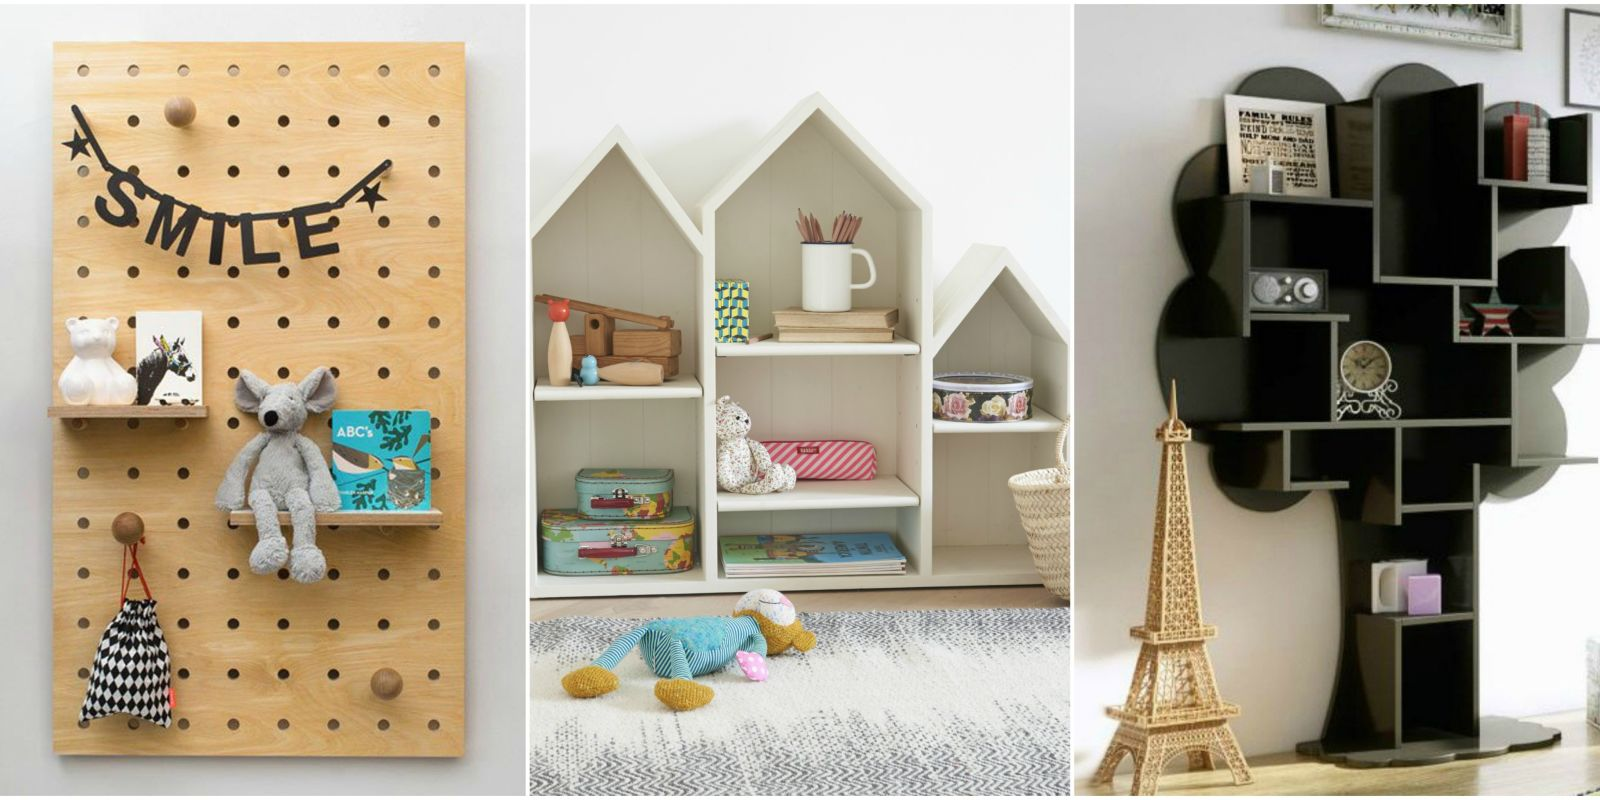 10 children 39 s room storage ideas kids 39 bedroom and playroom inspiration - Kids room storage ideas for small room ...